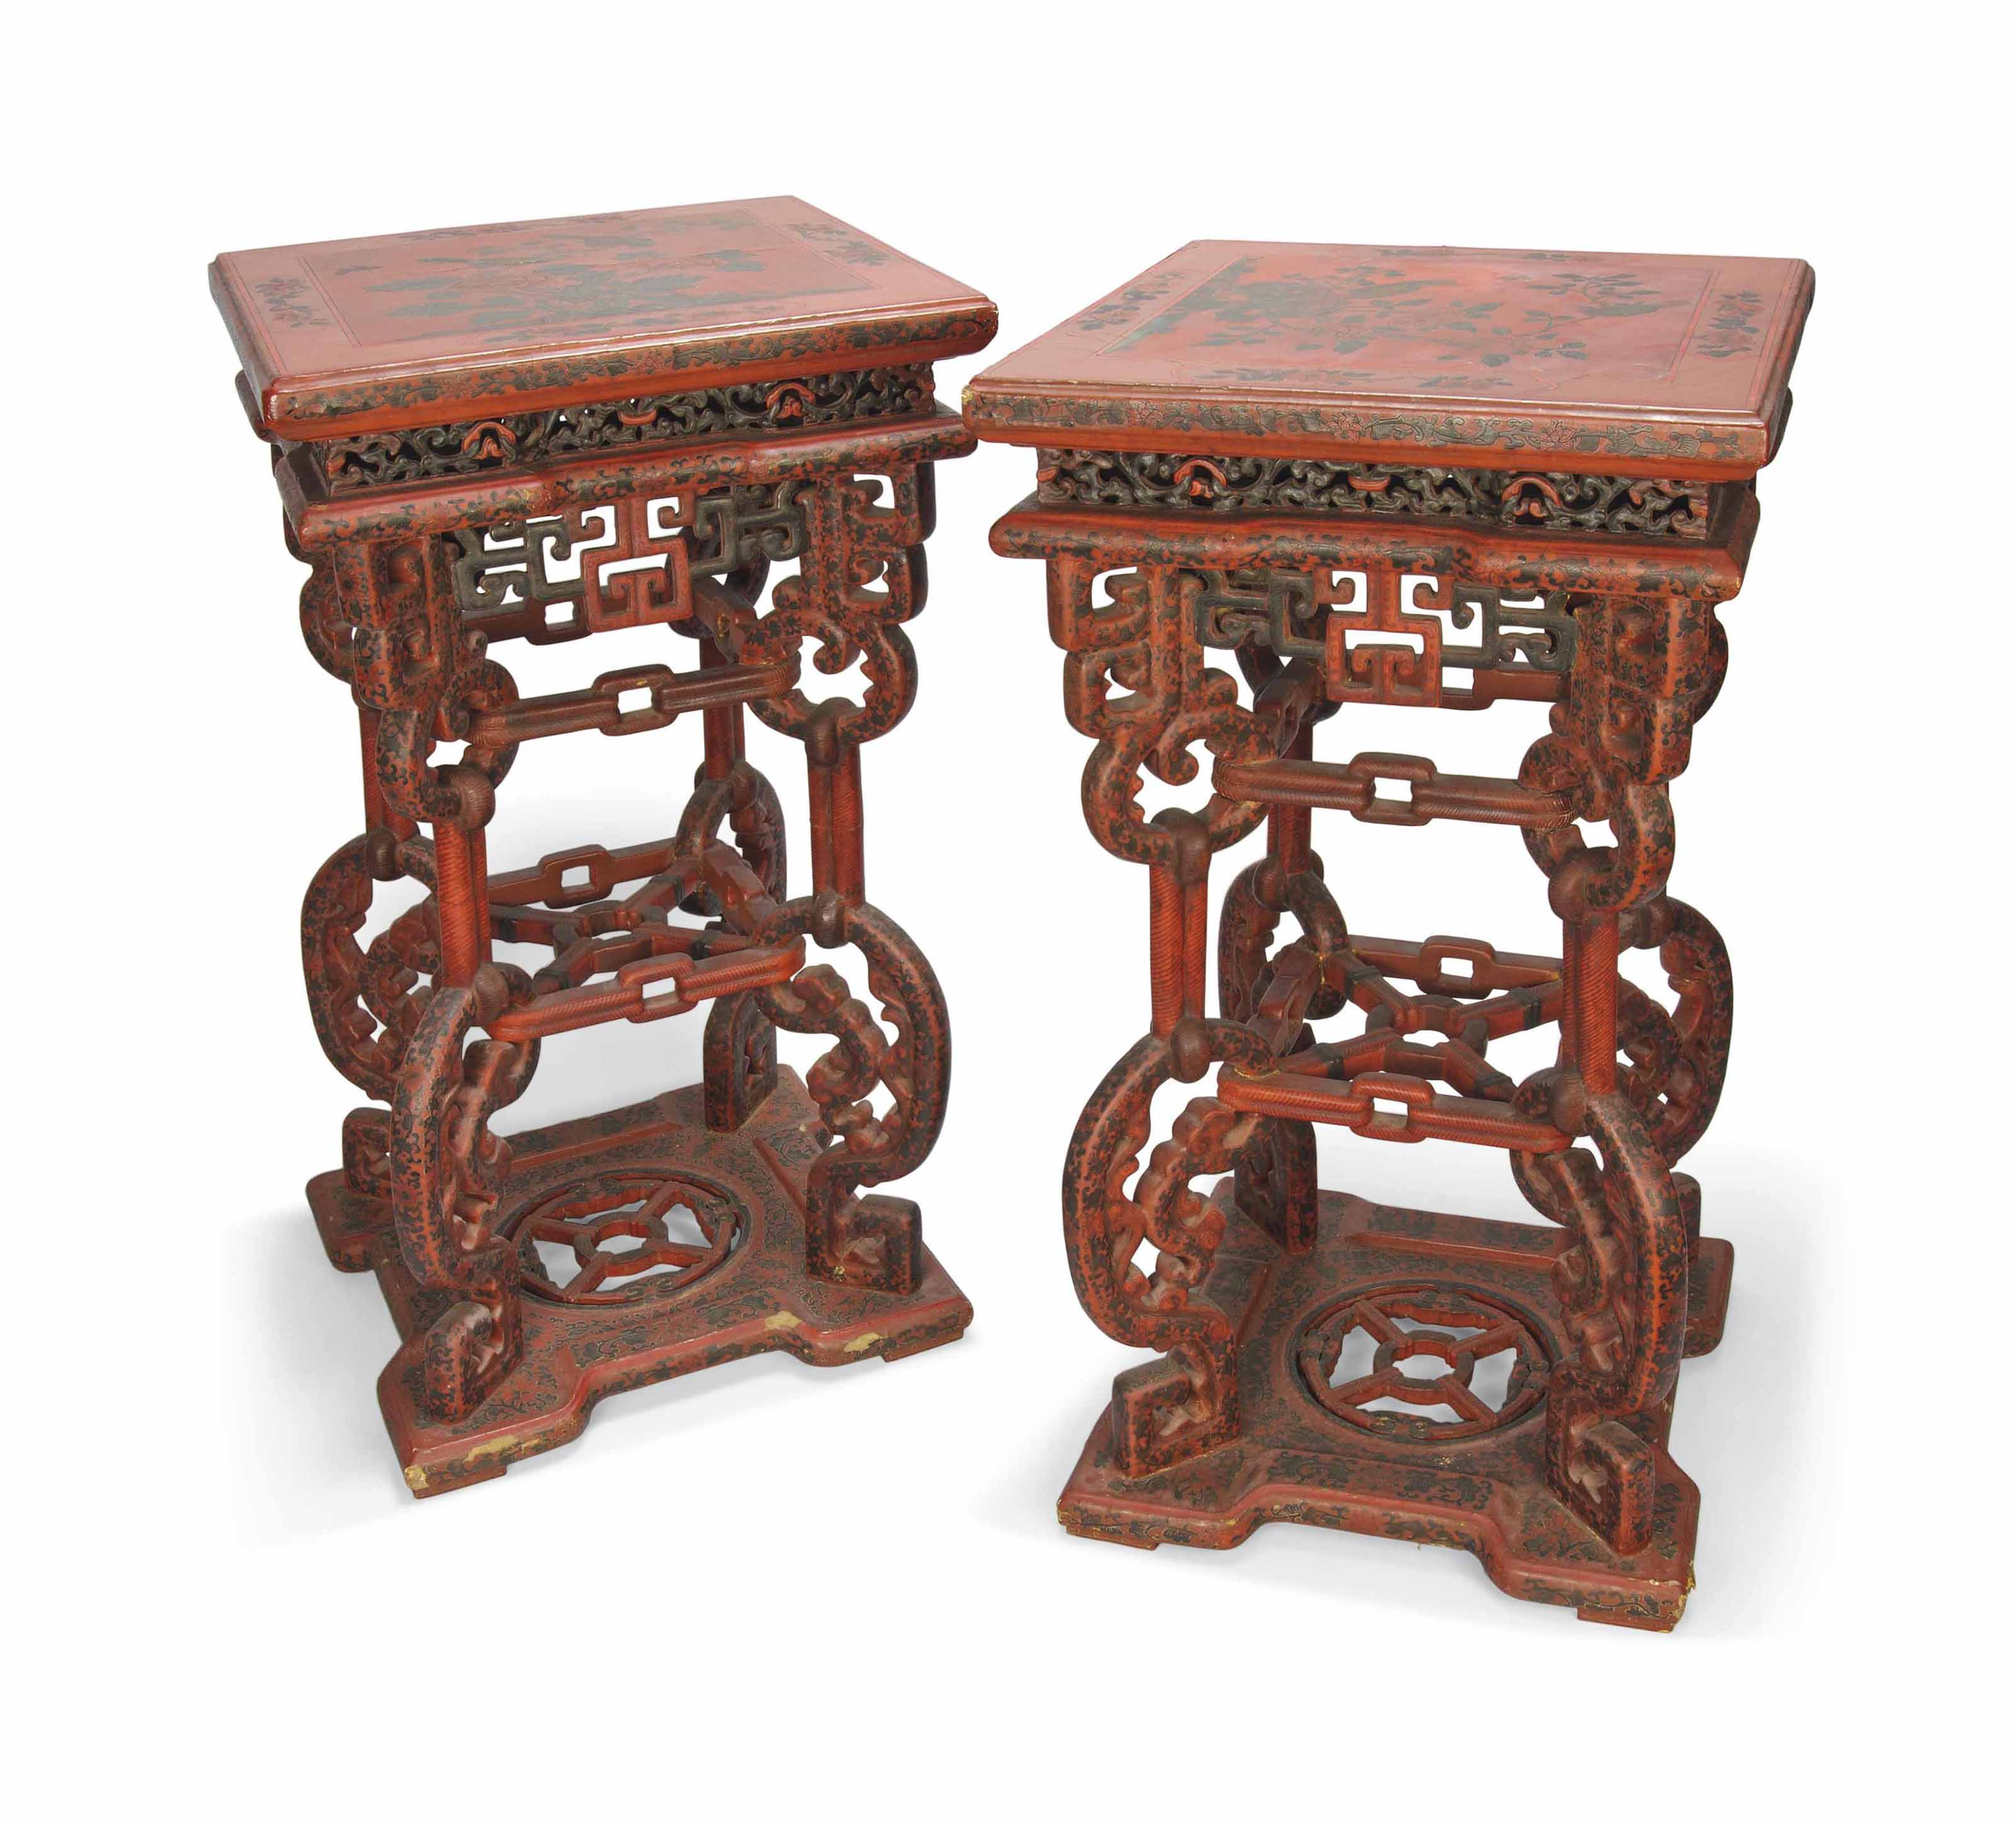 AN IMPRESSIVE PAIR OF POLYCHROME LACQUER STANDS